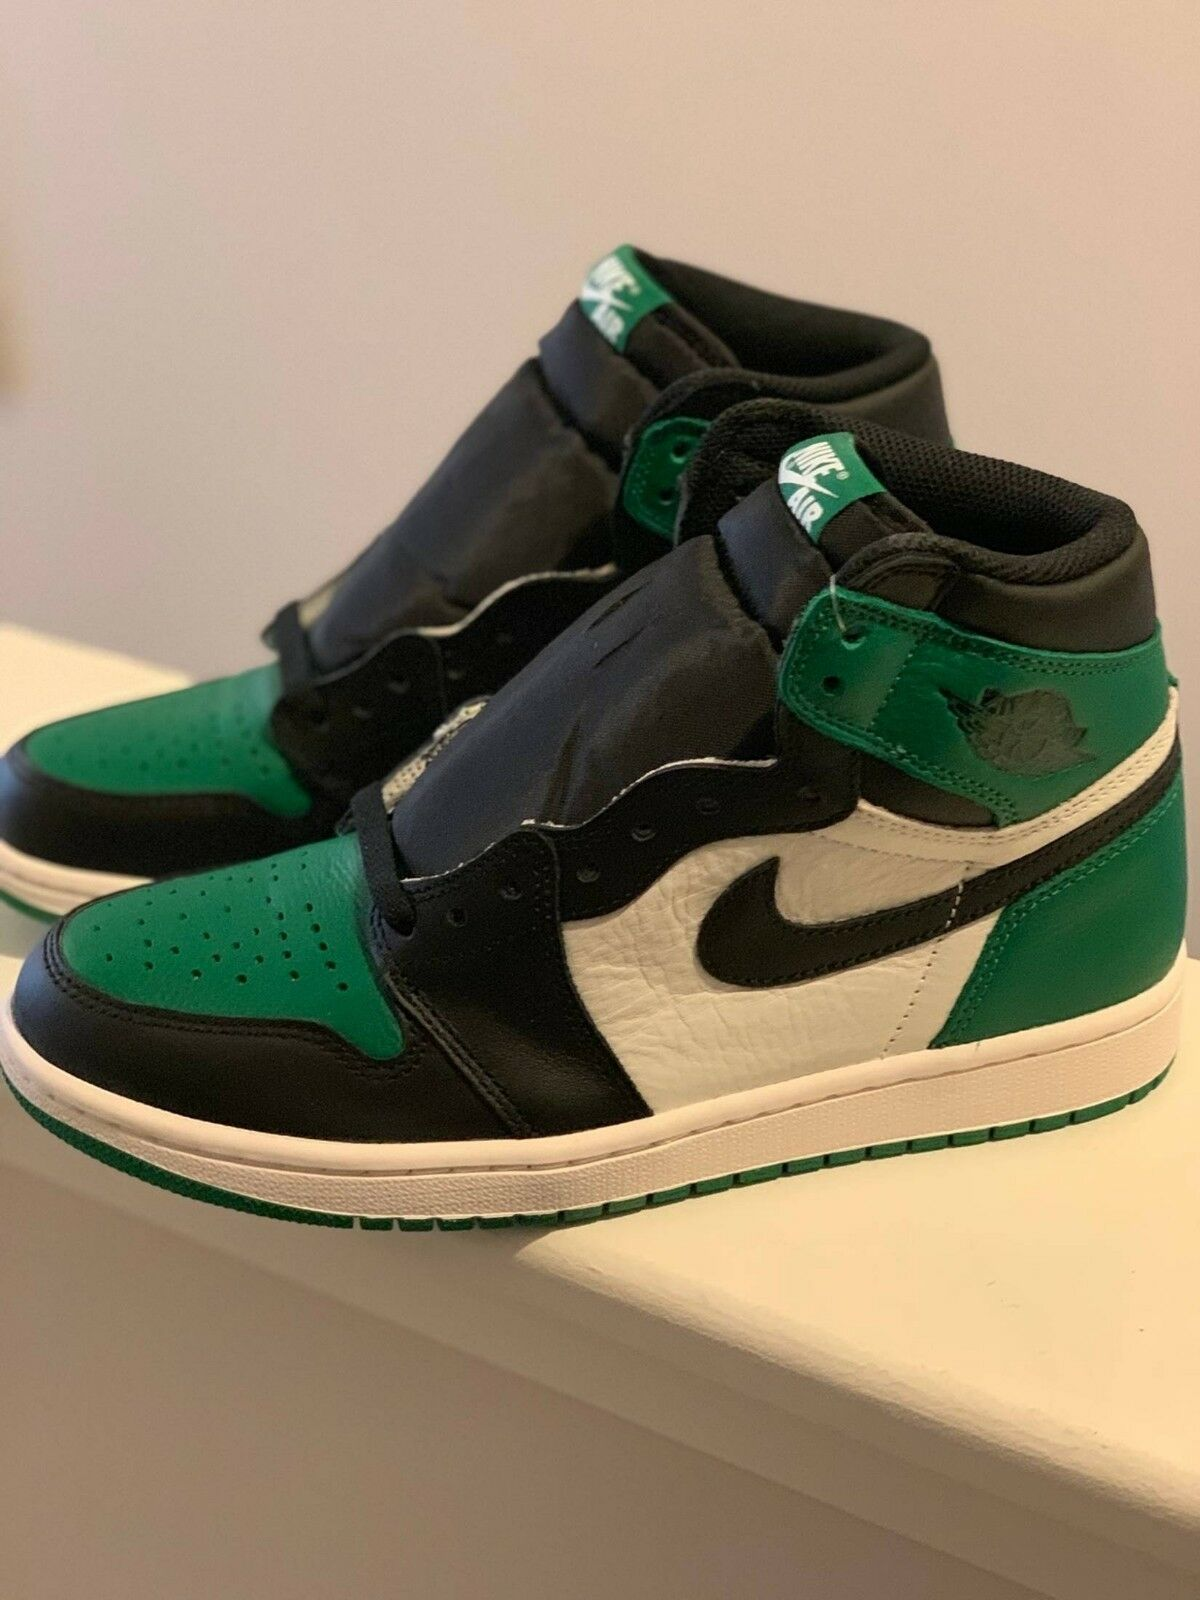 Nike Air Jordan 1 Retro Pine Green Size 8 US Men DS Authentic